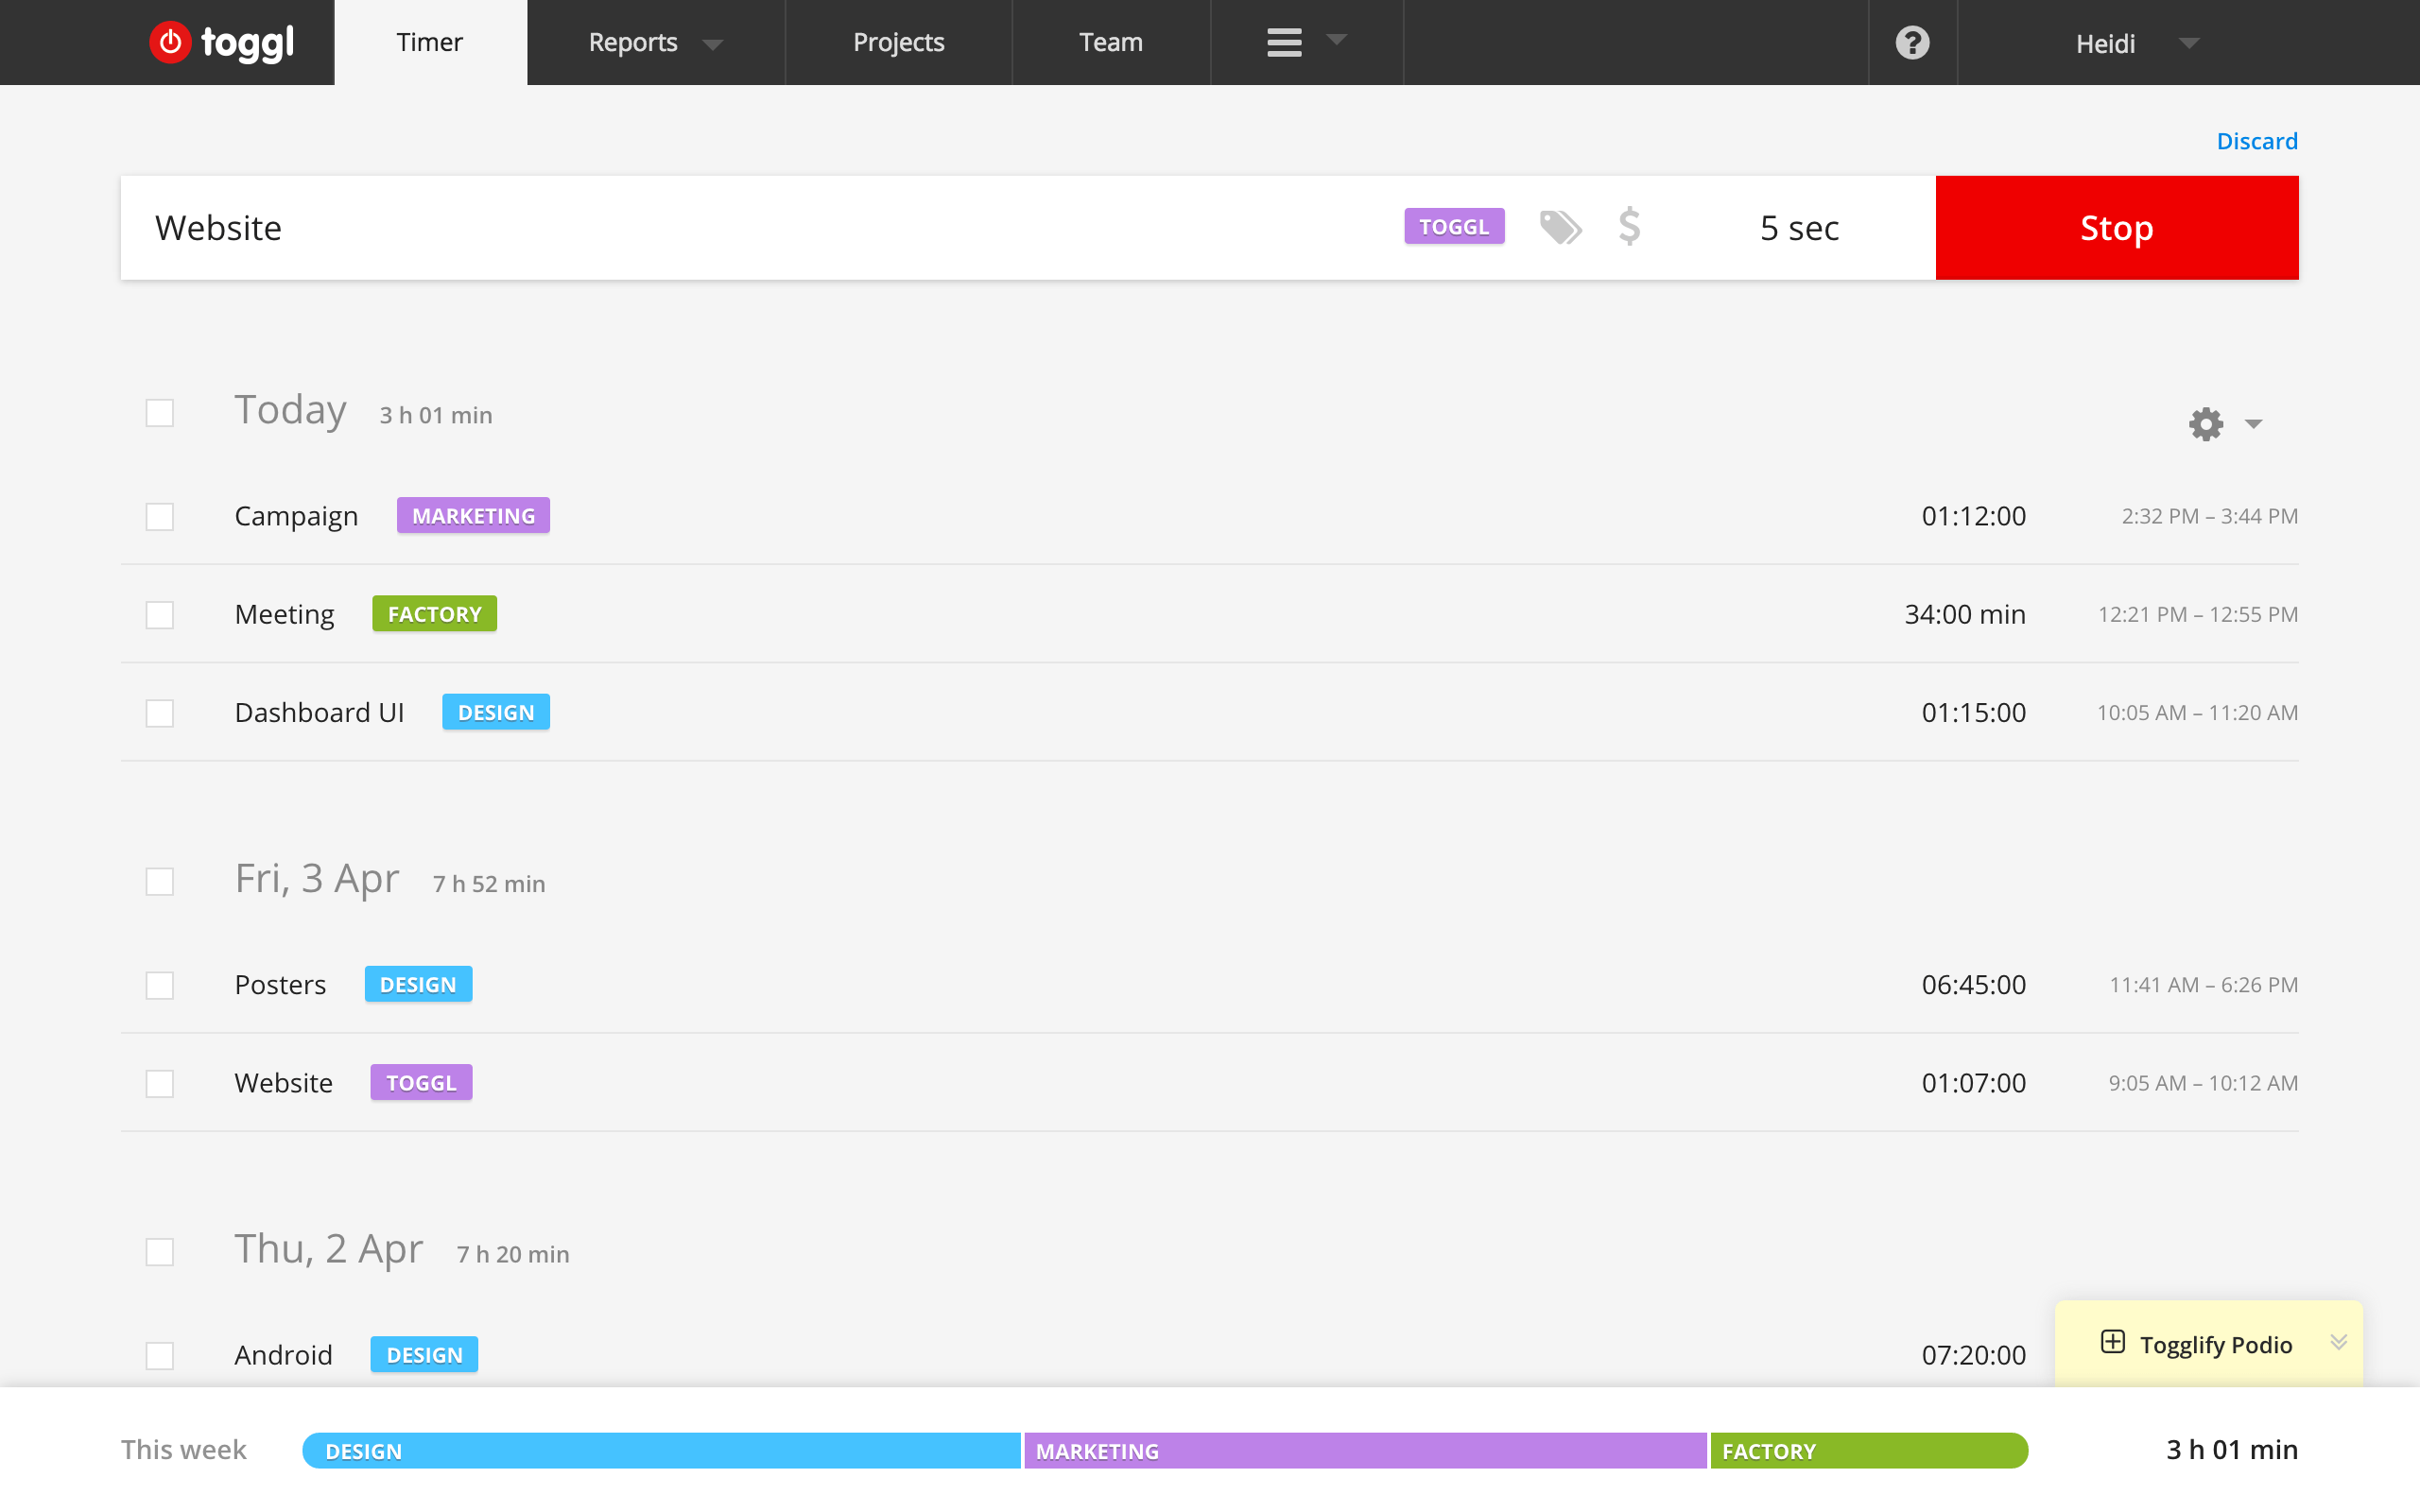 time tracking software - toggl